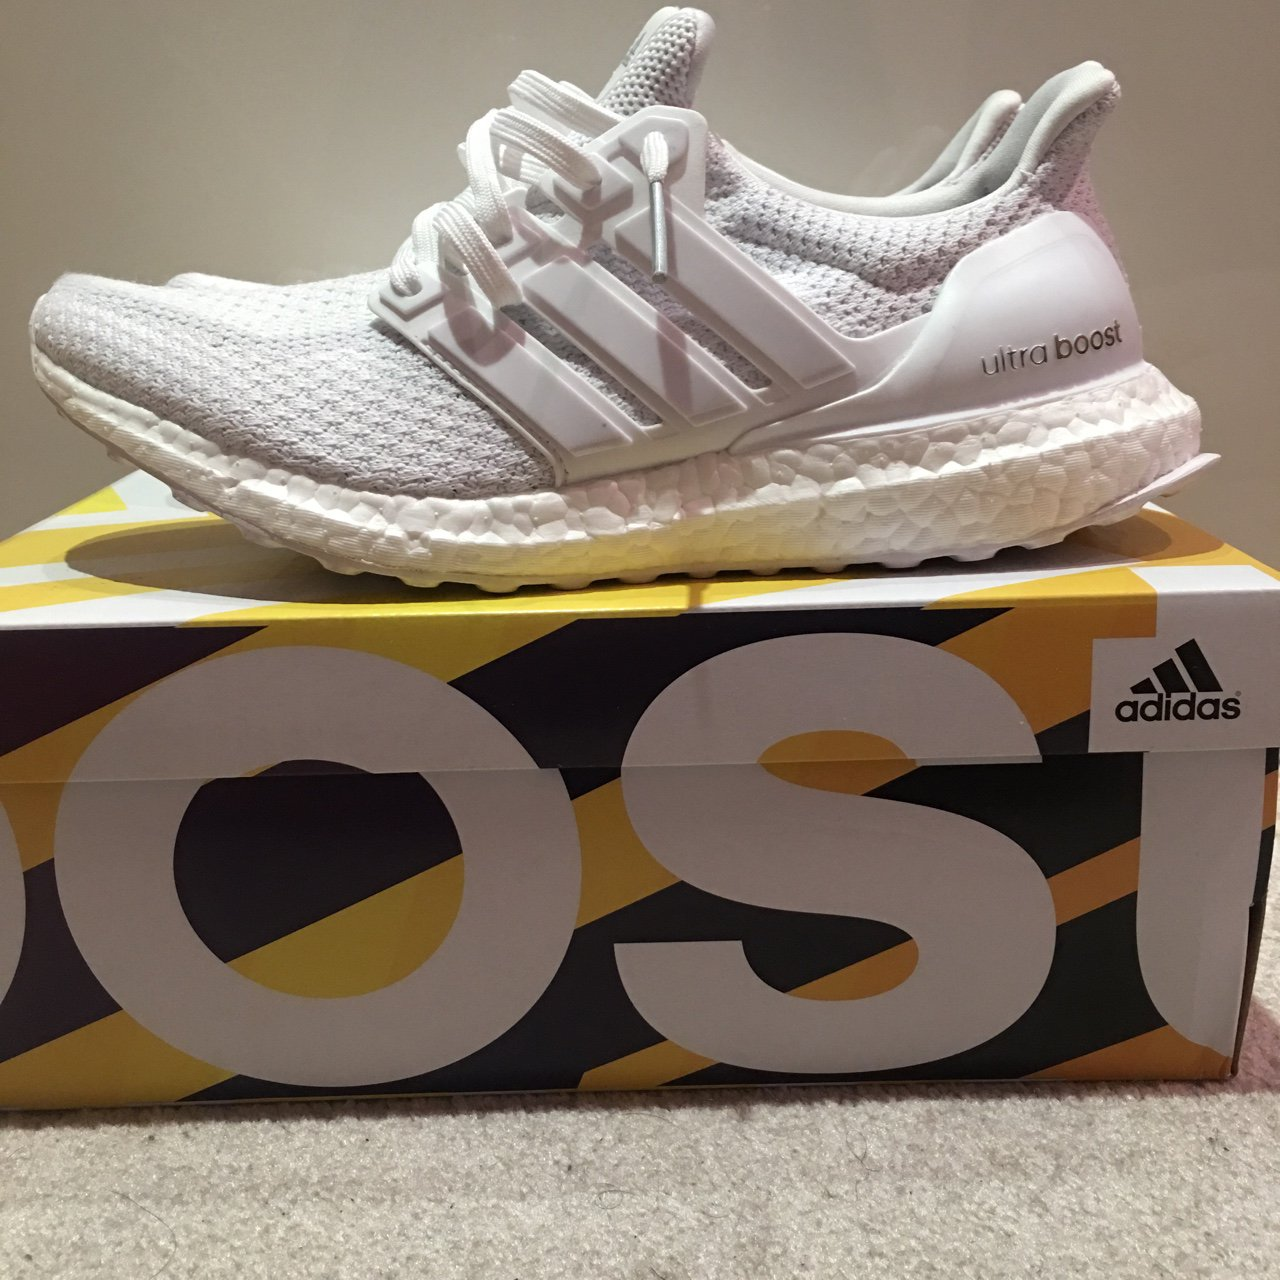 f08fa3809f5 Adidas ultraboost 2.0 white 9 10 uk7 Worn only a couple of - Depop